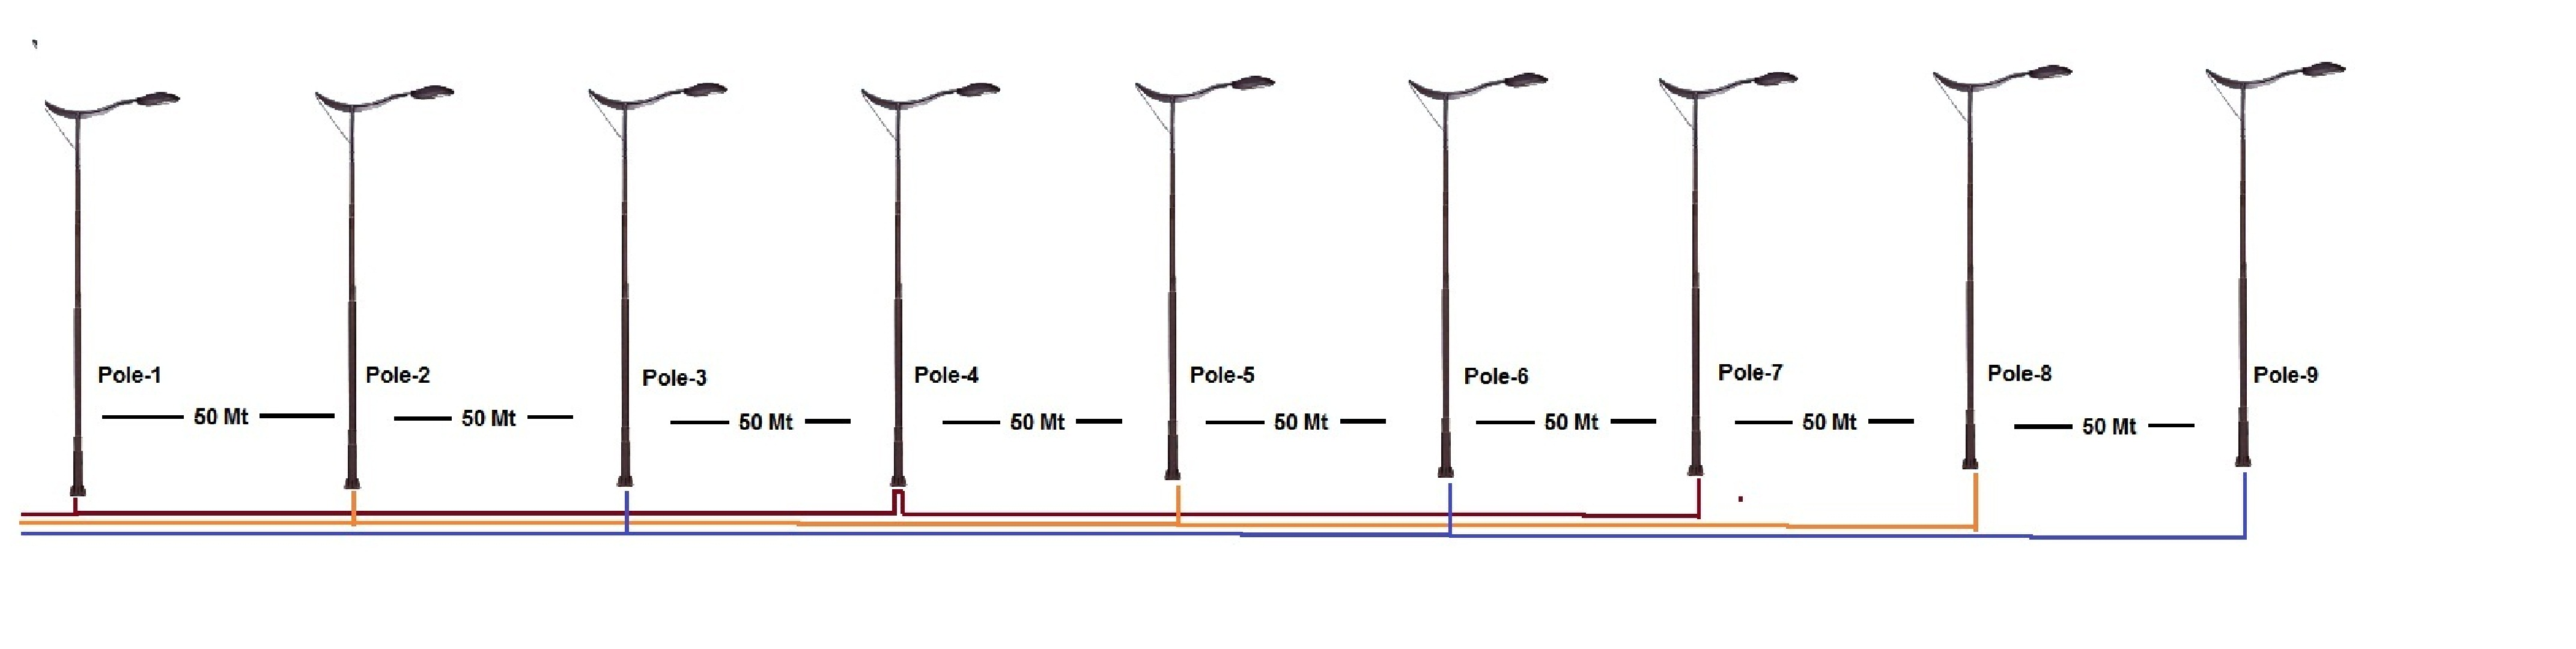 Calculate Cable Voltage Drop For Street Light Pole